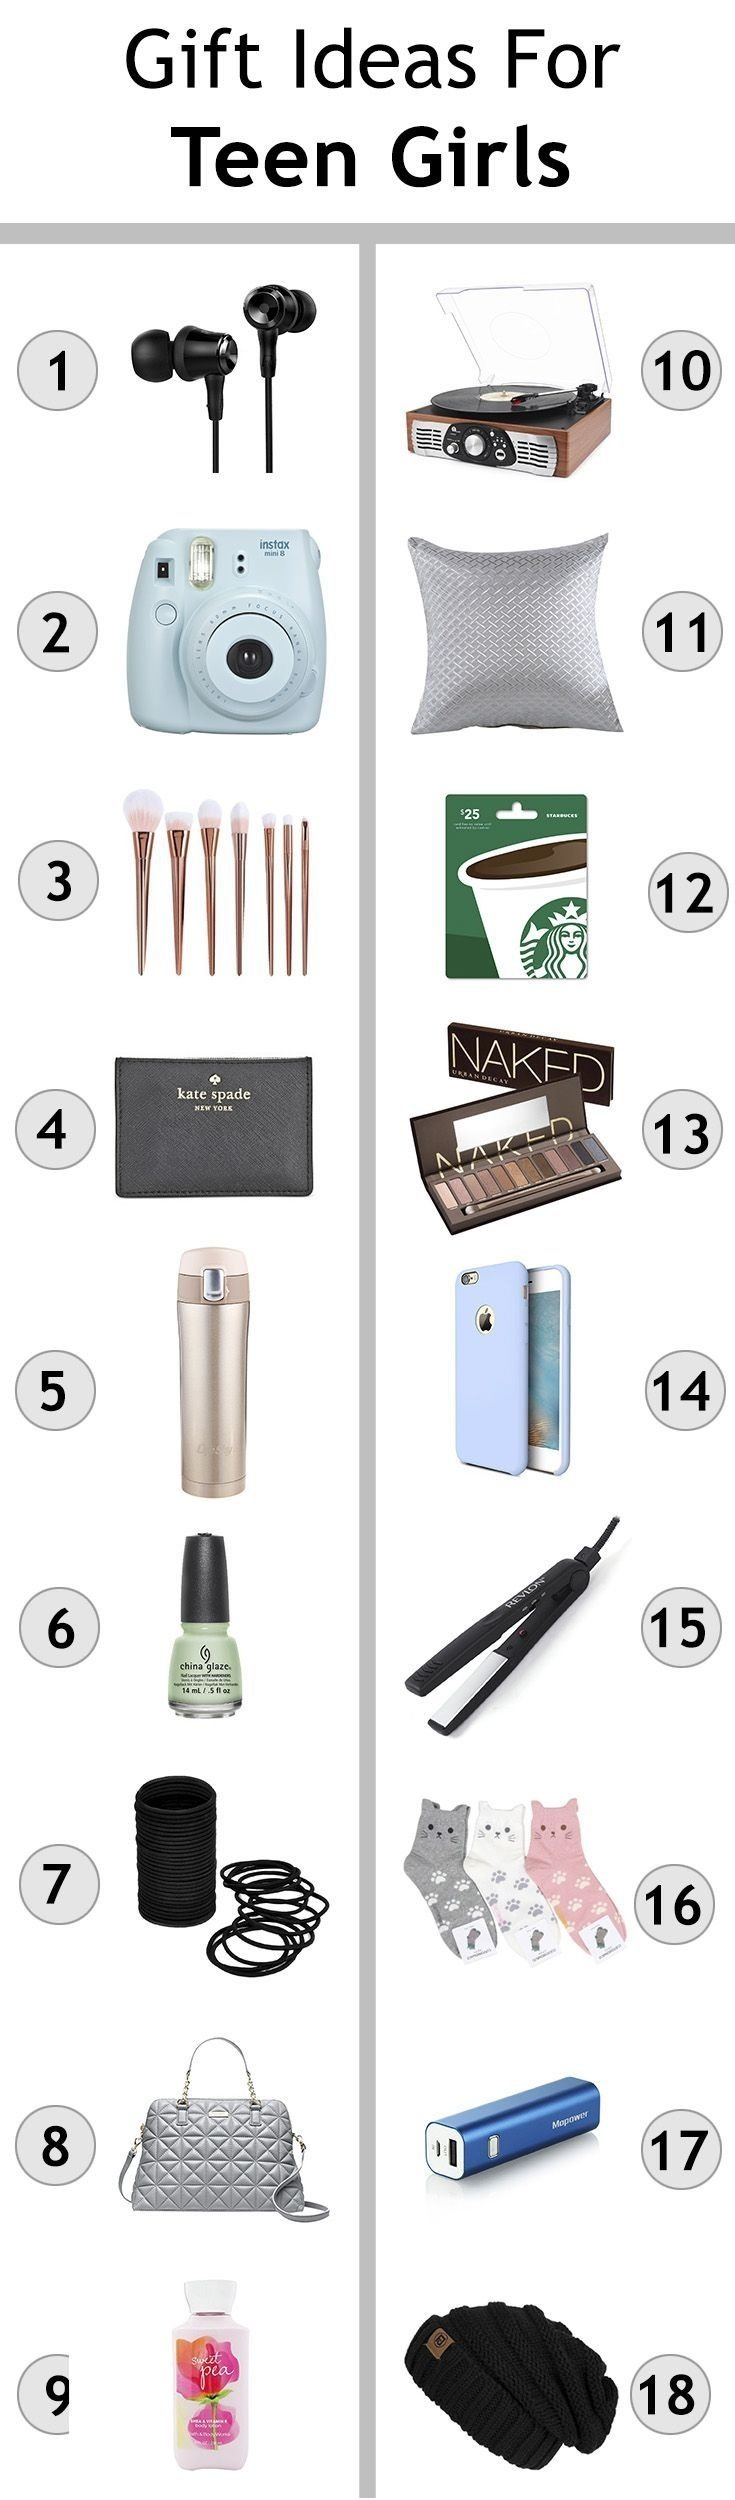 Christmas Gifts For Teenage Girl 2019.10 Fantastic Great Gift Ideas For Teenage Girls 2019